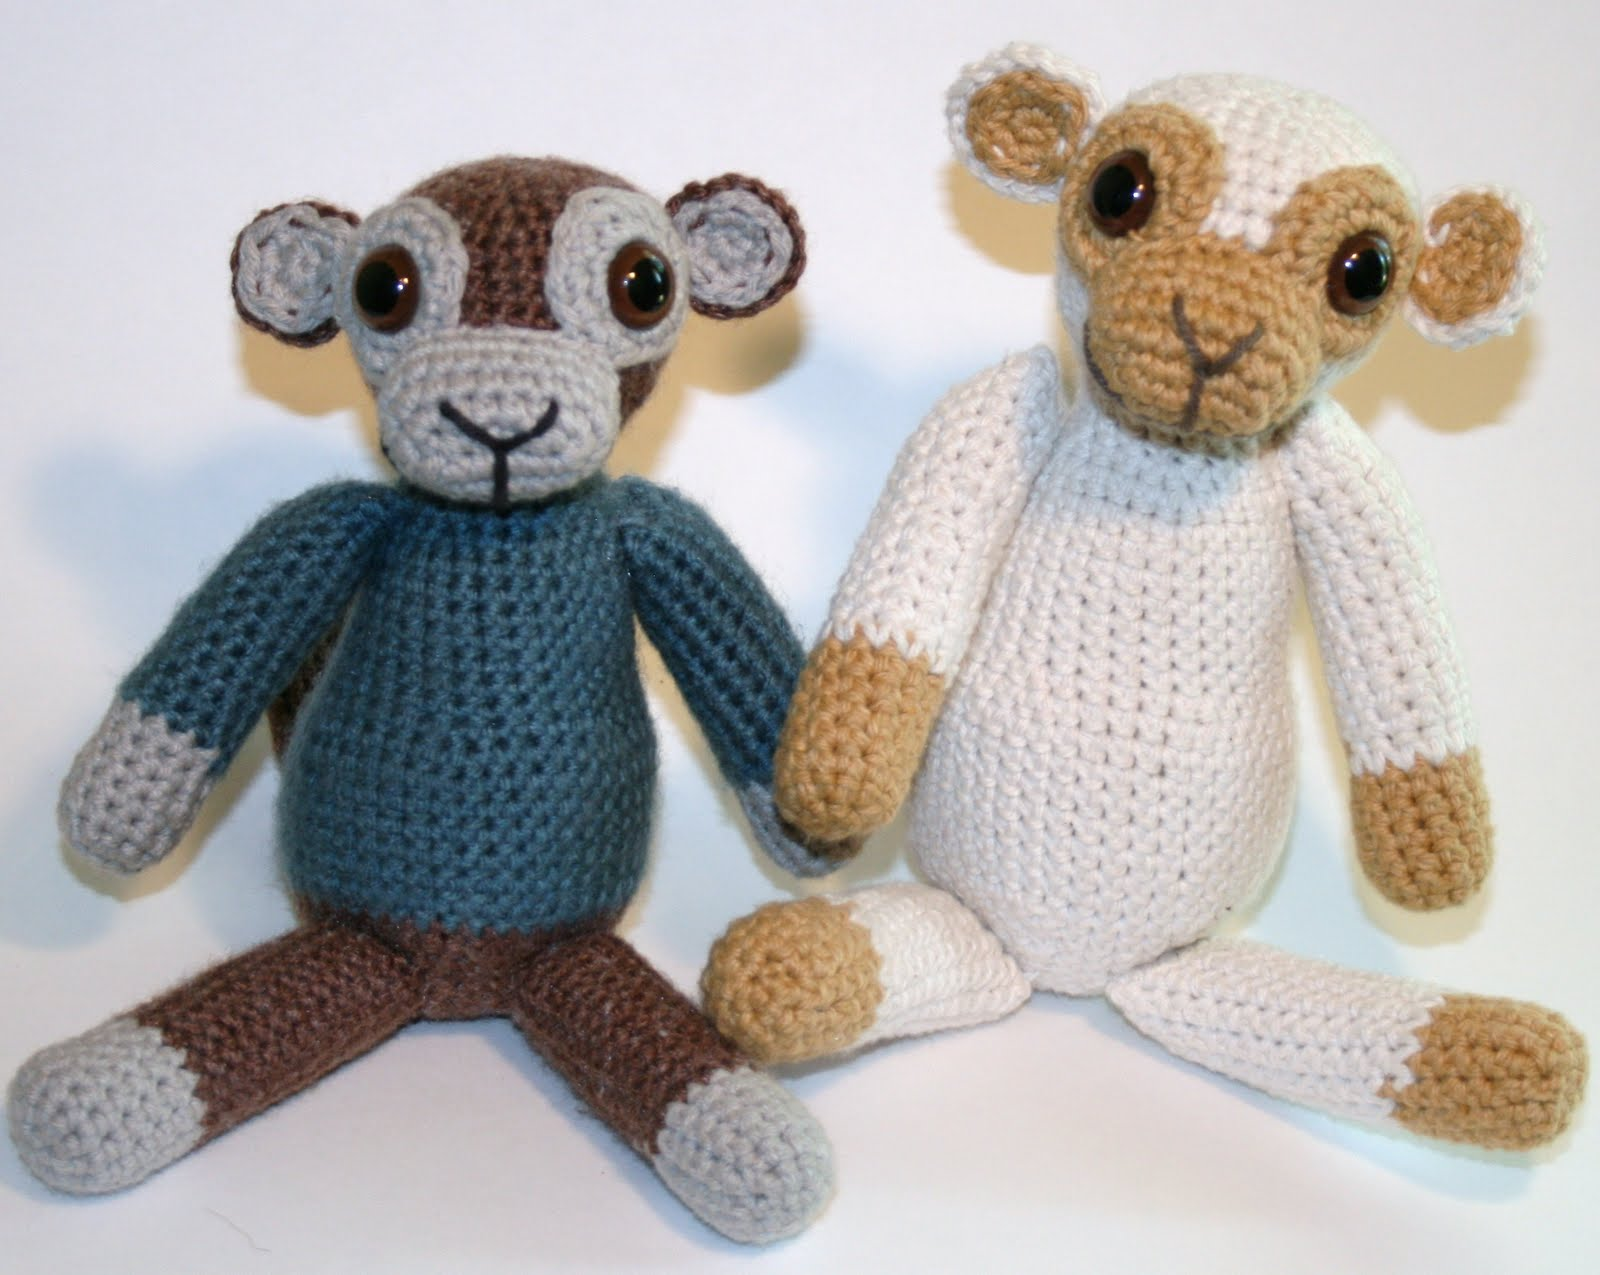 Amigurumi Free Pattern Crochet : Search Results for ?Amigurumi Christmas New Free Patterns ...